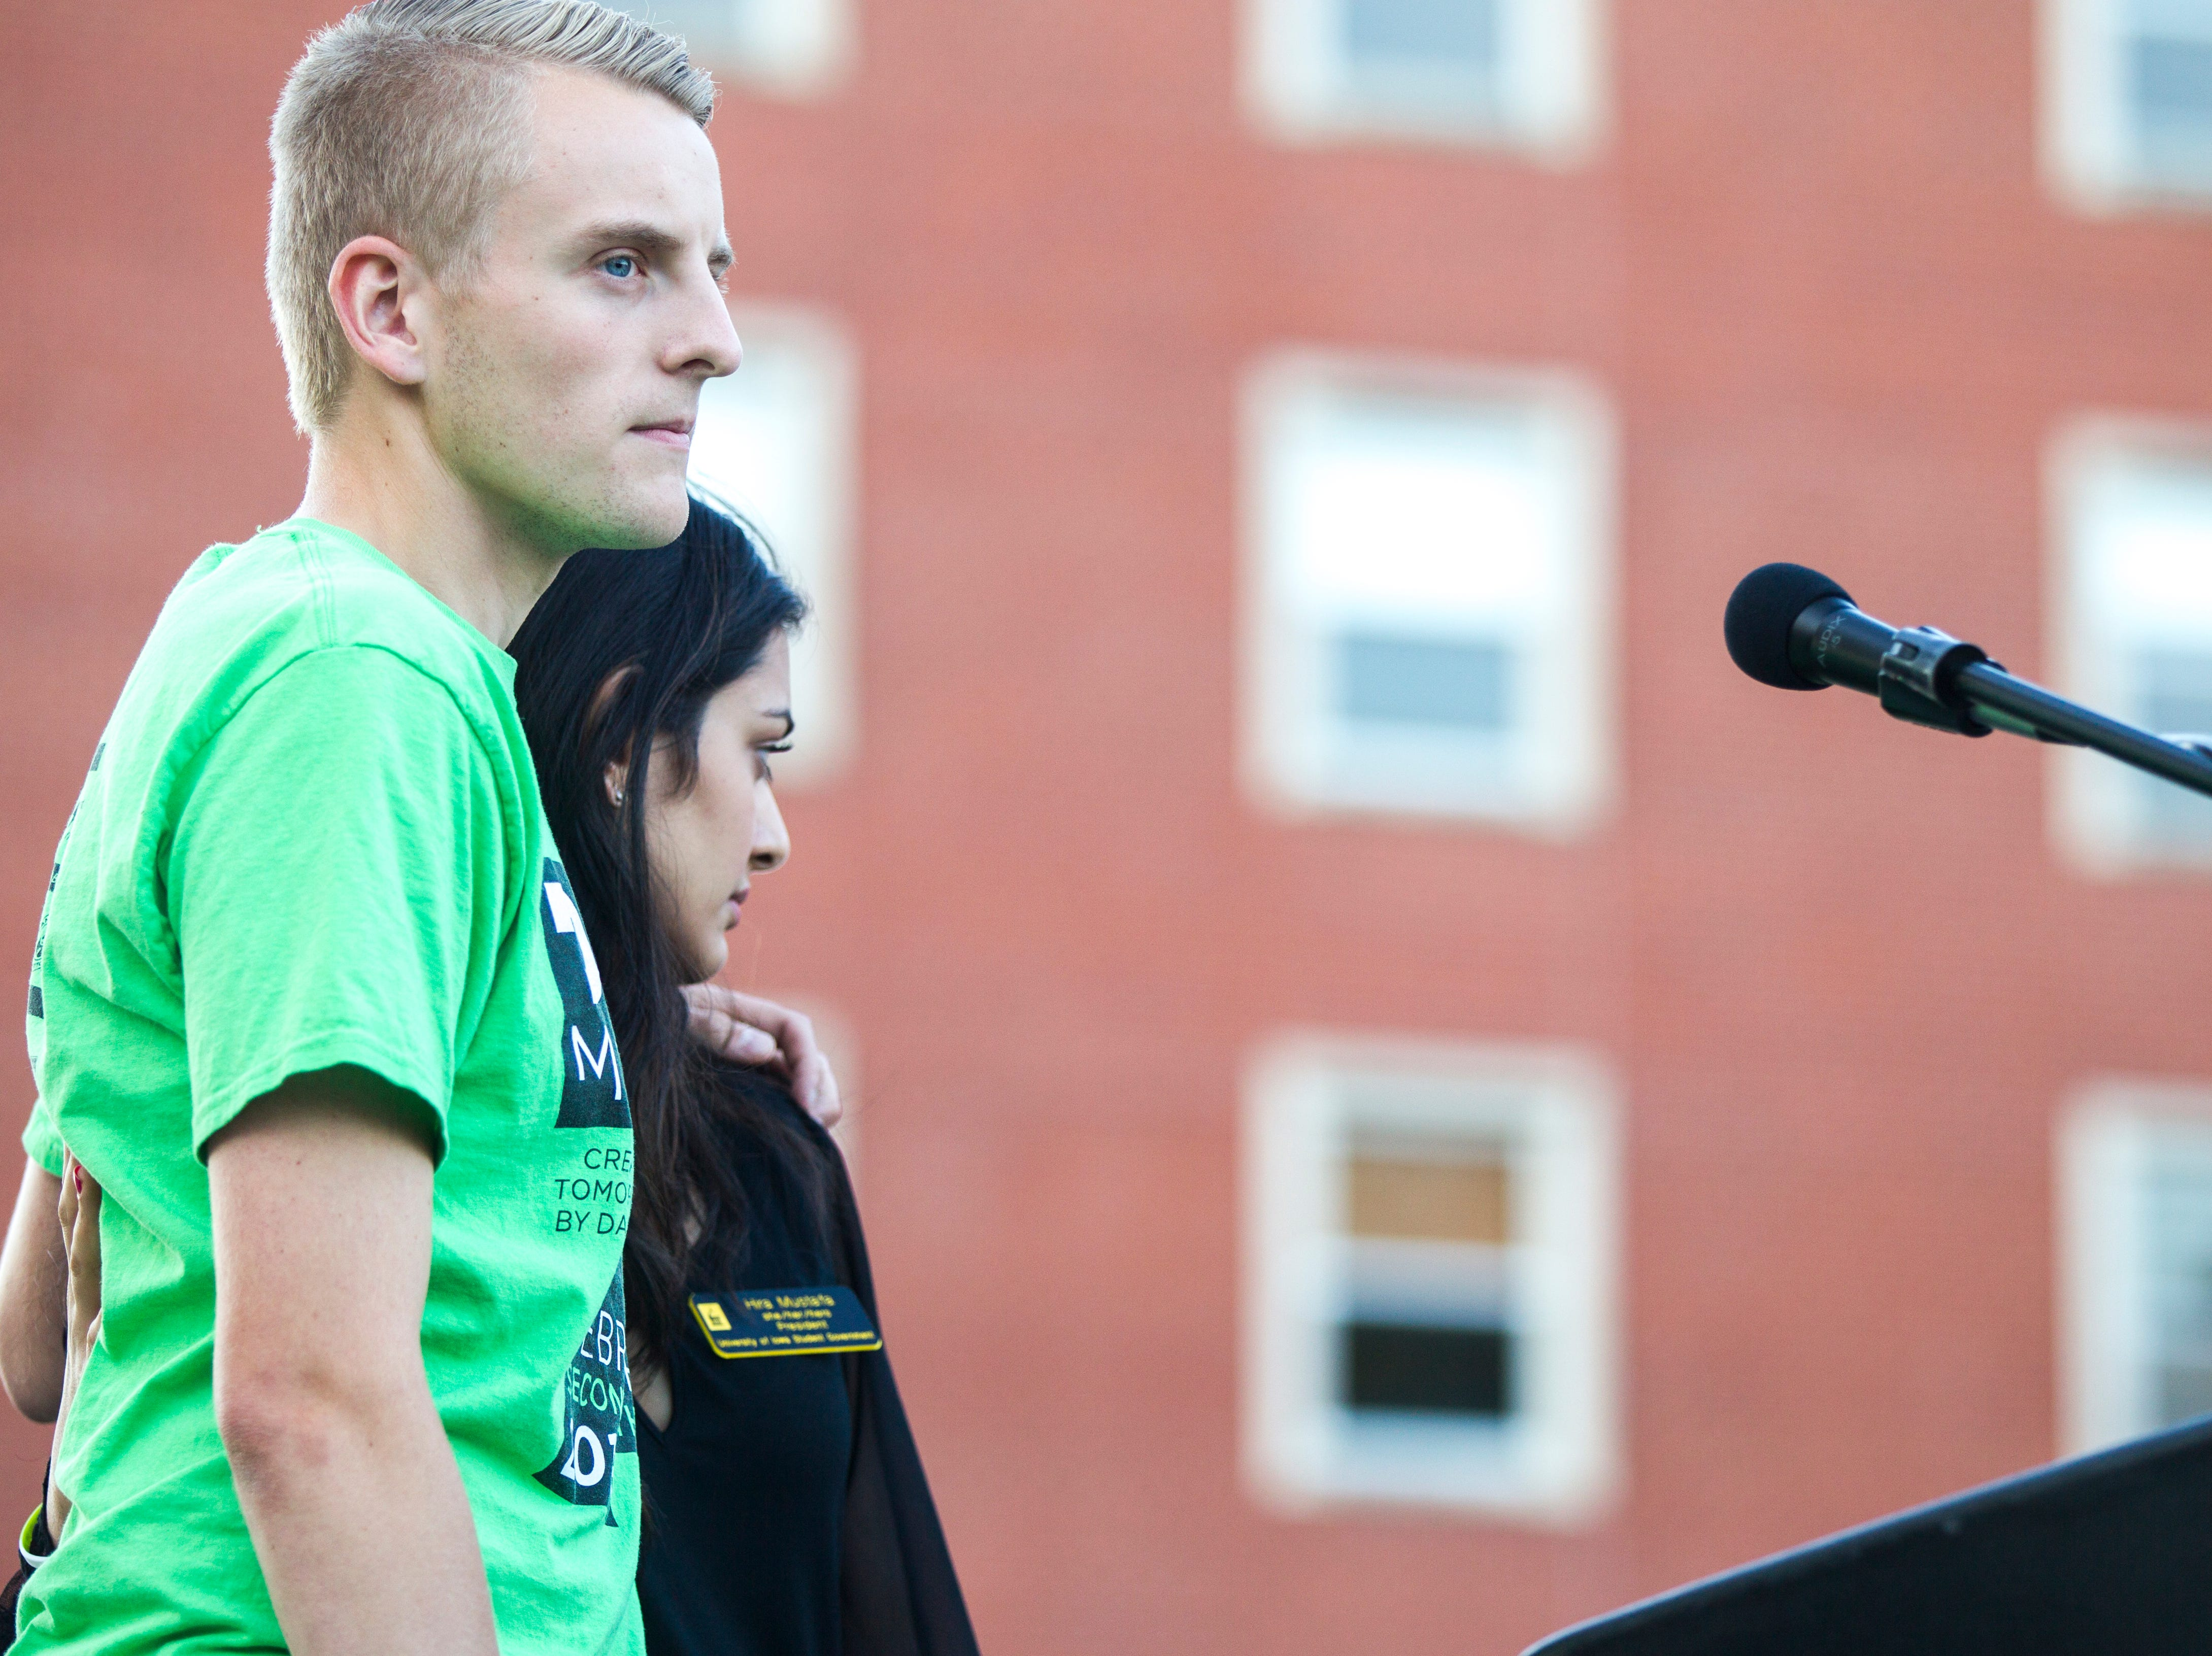 Charlie Ellis, Executive Director of Dance Marathon, embraces Hira Mustafa, University of Iowa Student Government President, during a moment of silence at a vigil for Mollie Tibbetts on Wednesday, Aug. 22, 2018, in Hubbard Park on the University of Iowa campus in Iowa City.